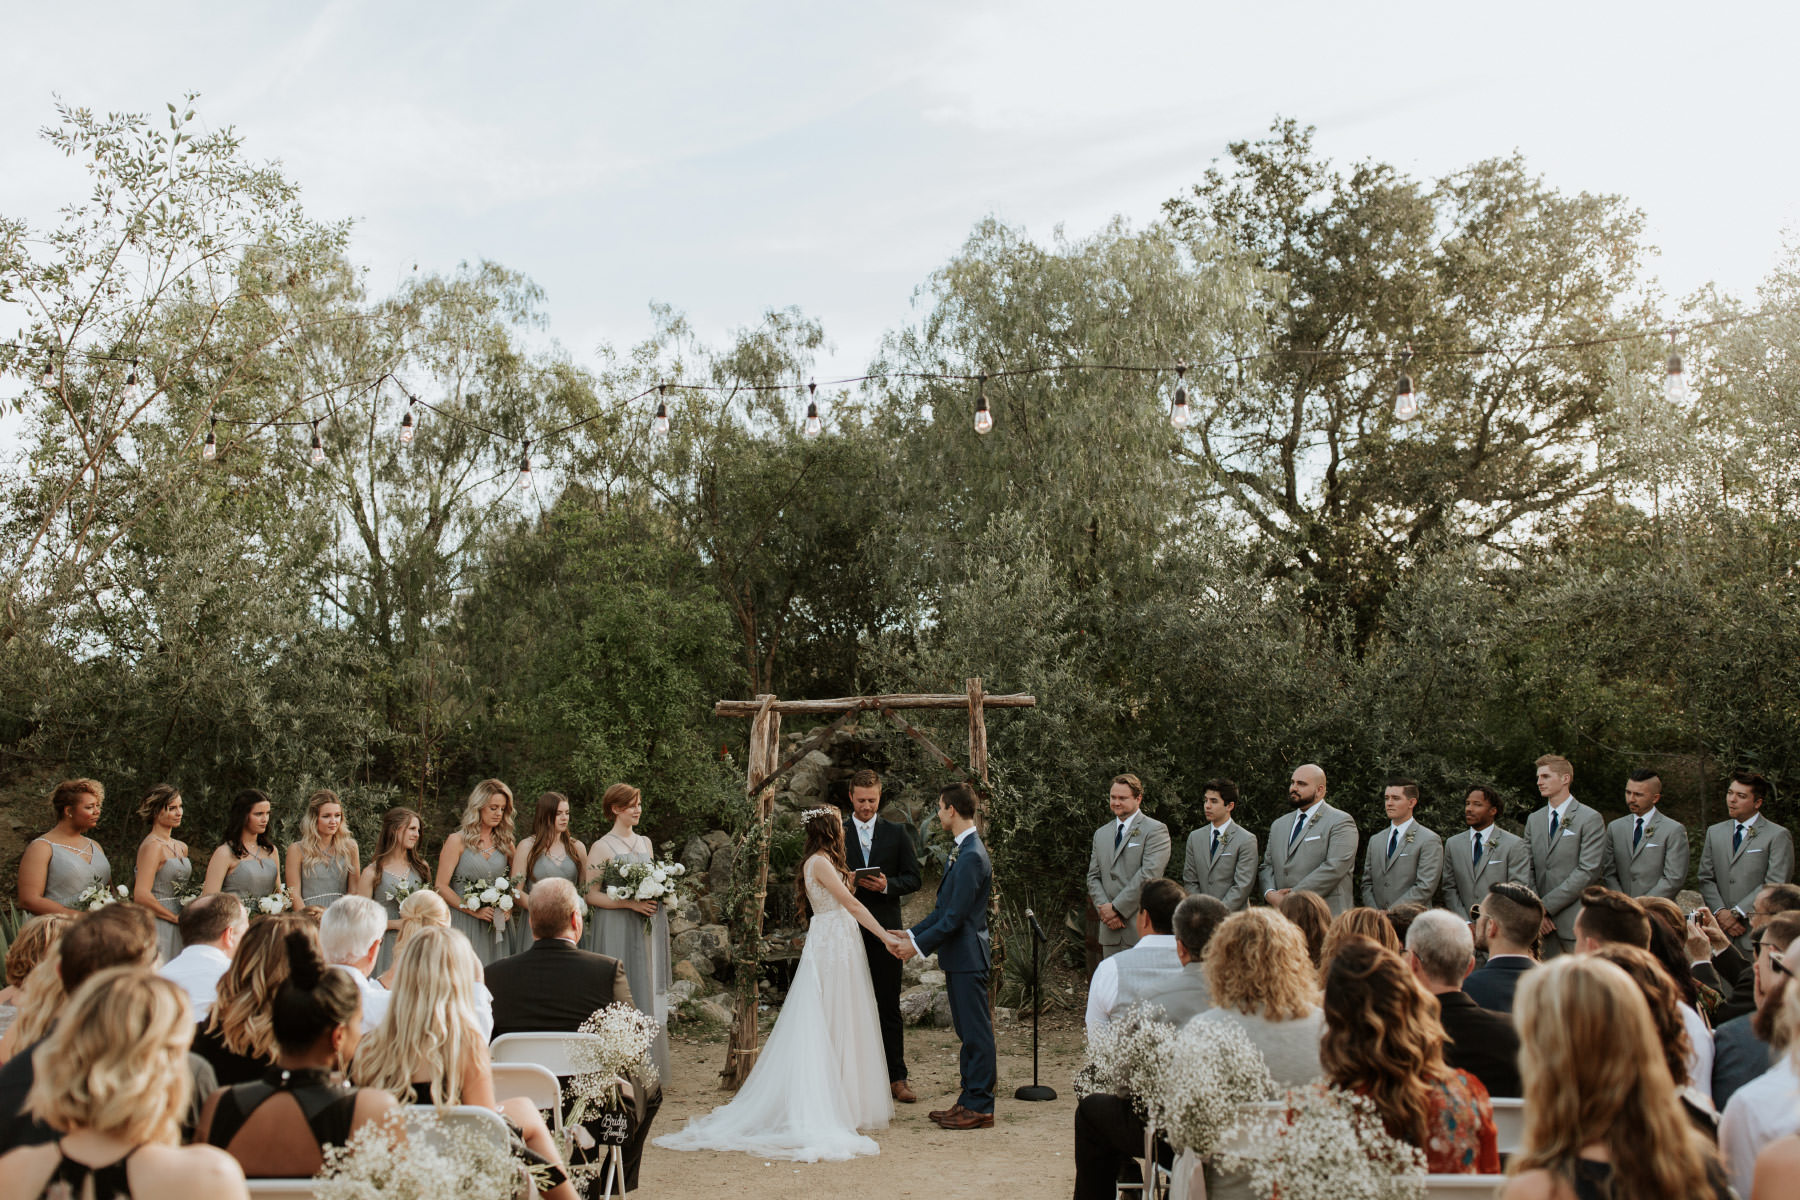 Terra Madre Gardens wedding ceremony